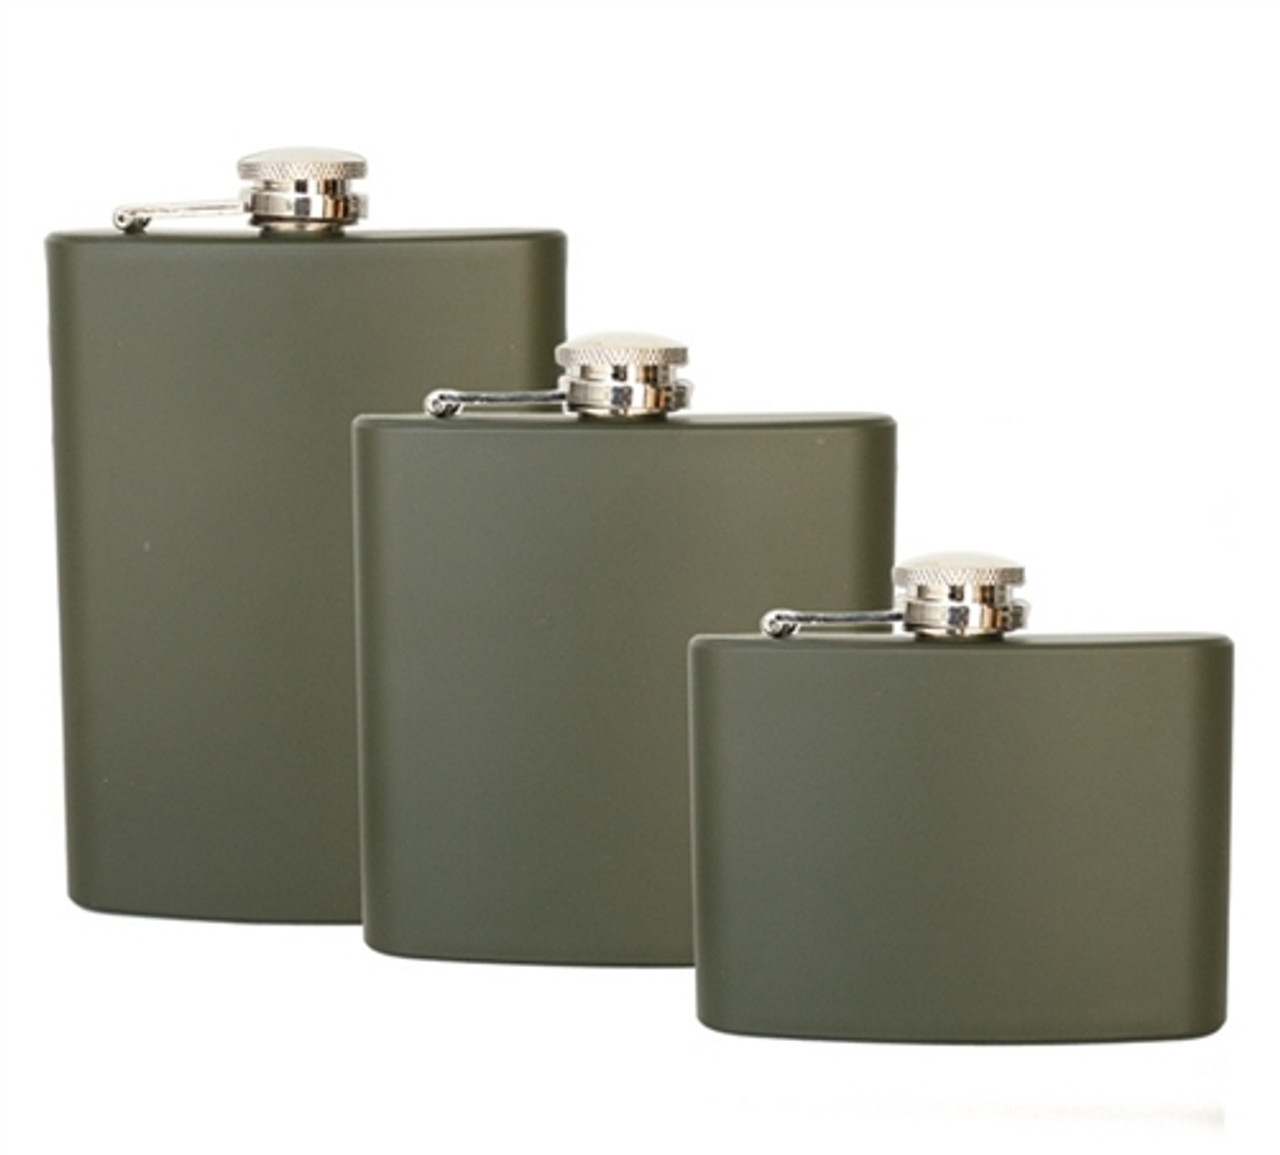 New Stainless Steel Flask - OD Green from Hessen Antique